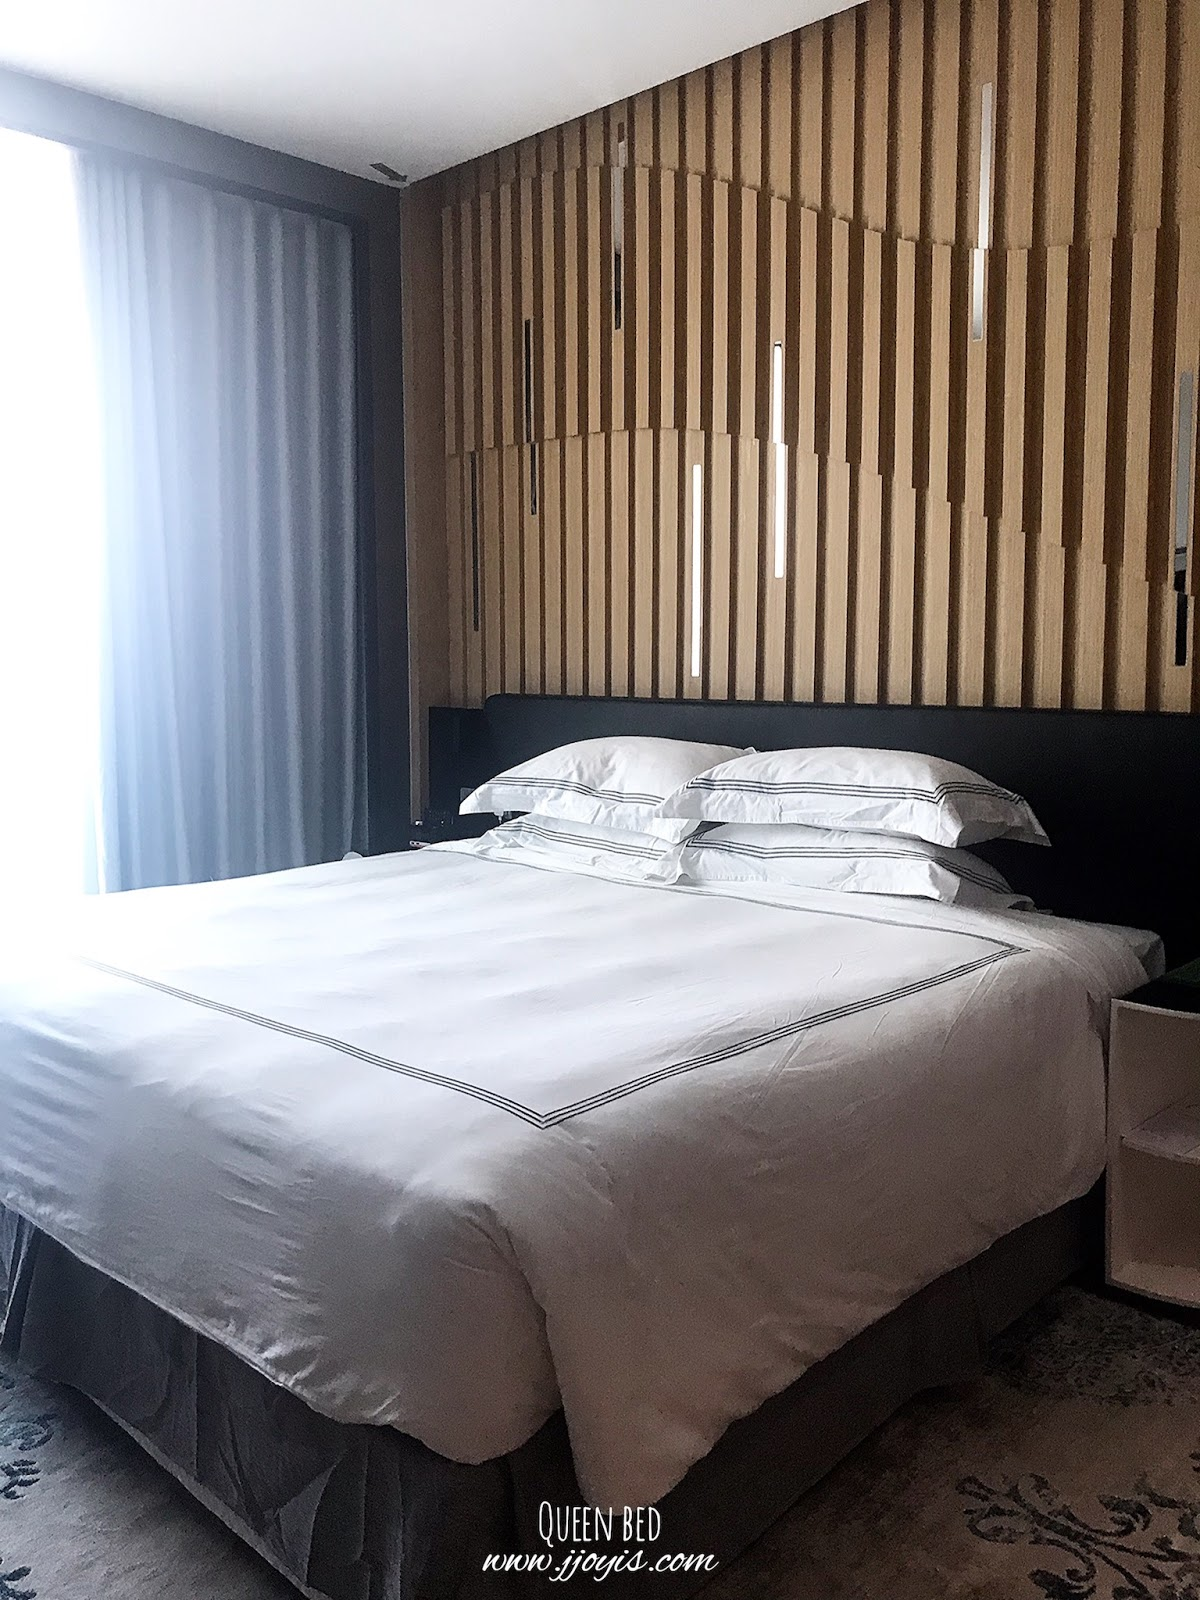 fraser place puteri harbour, malaysia, hotel review, deluxe studio room, overview of room